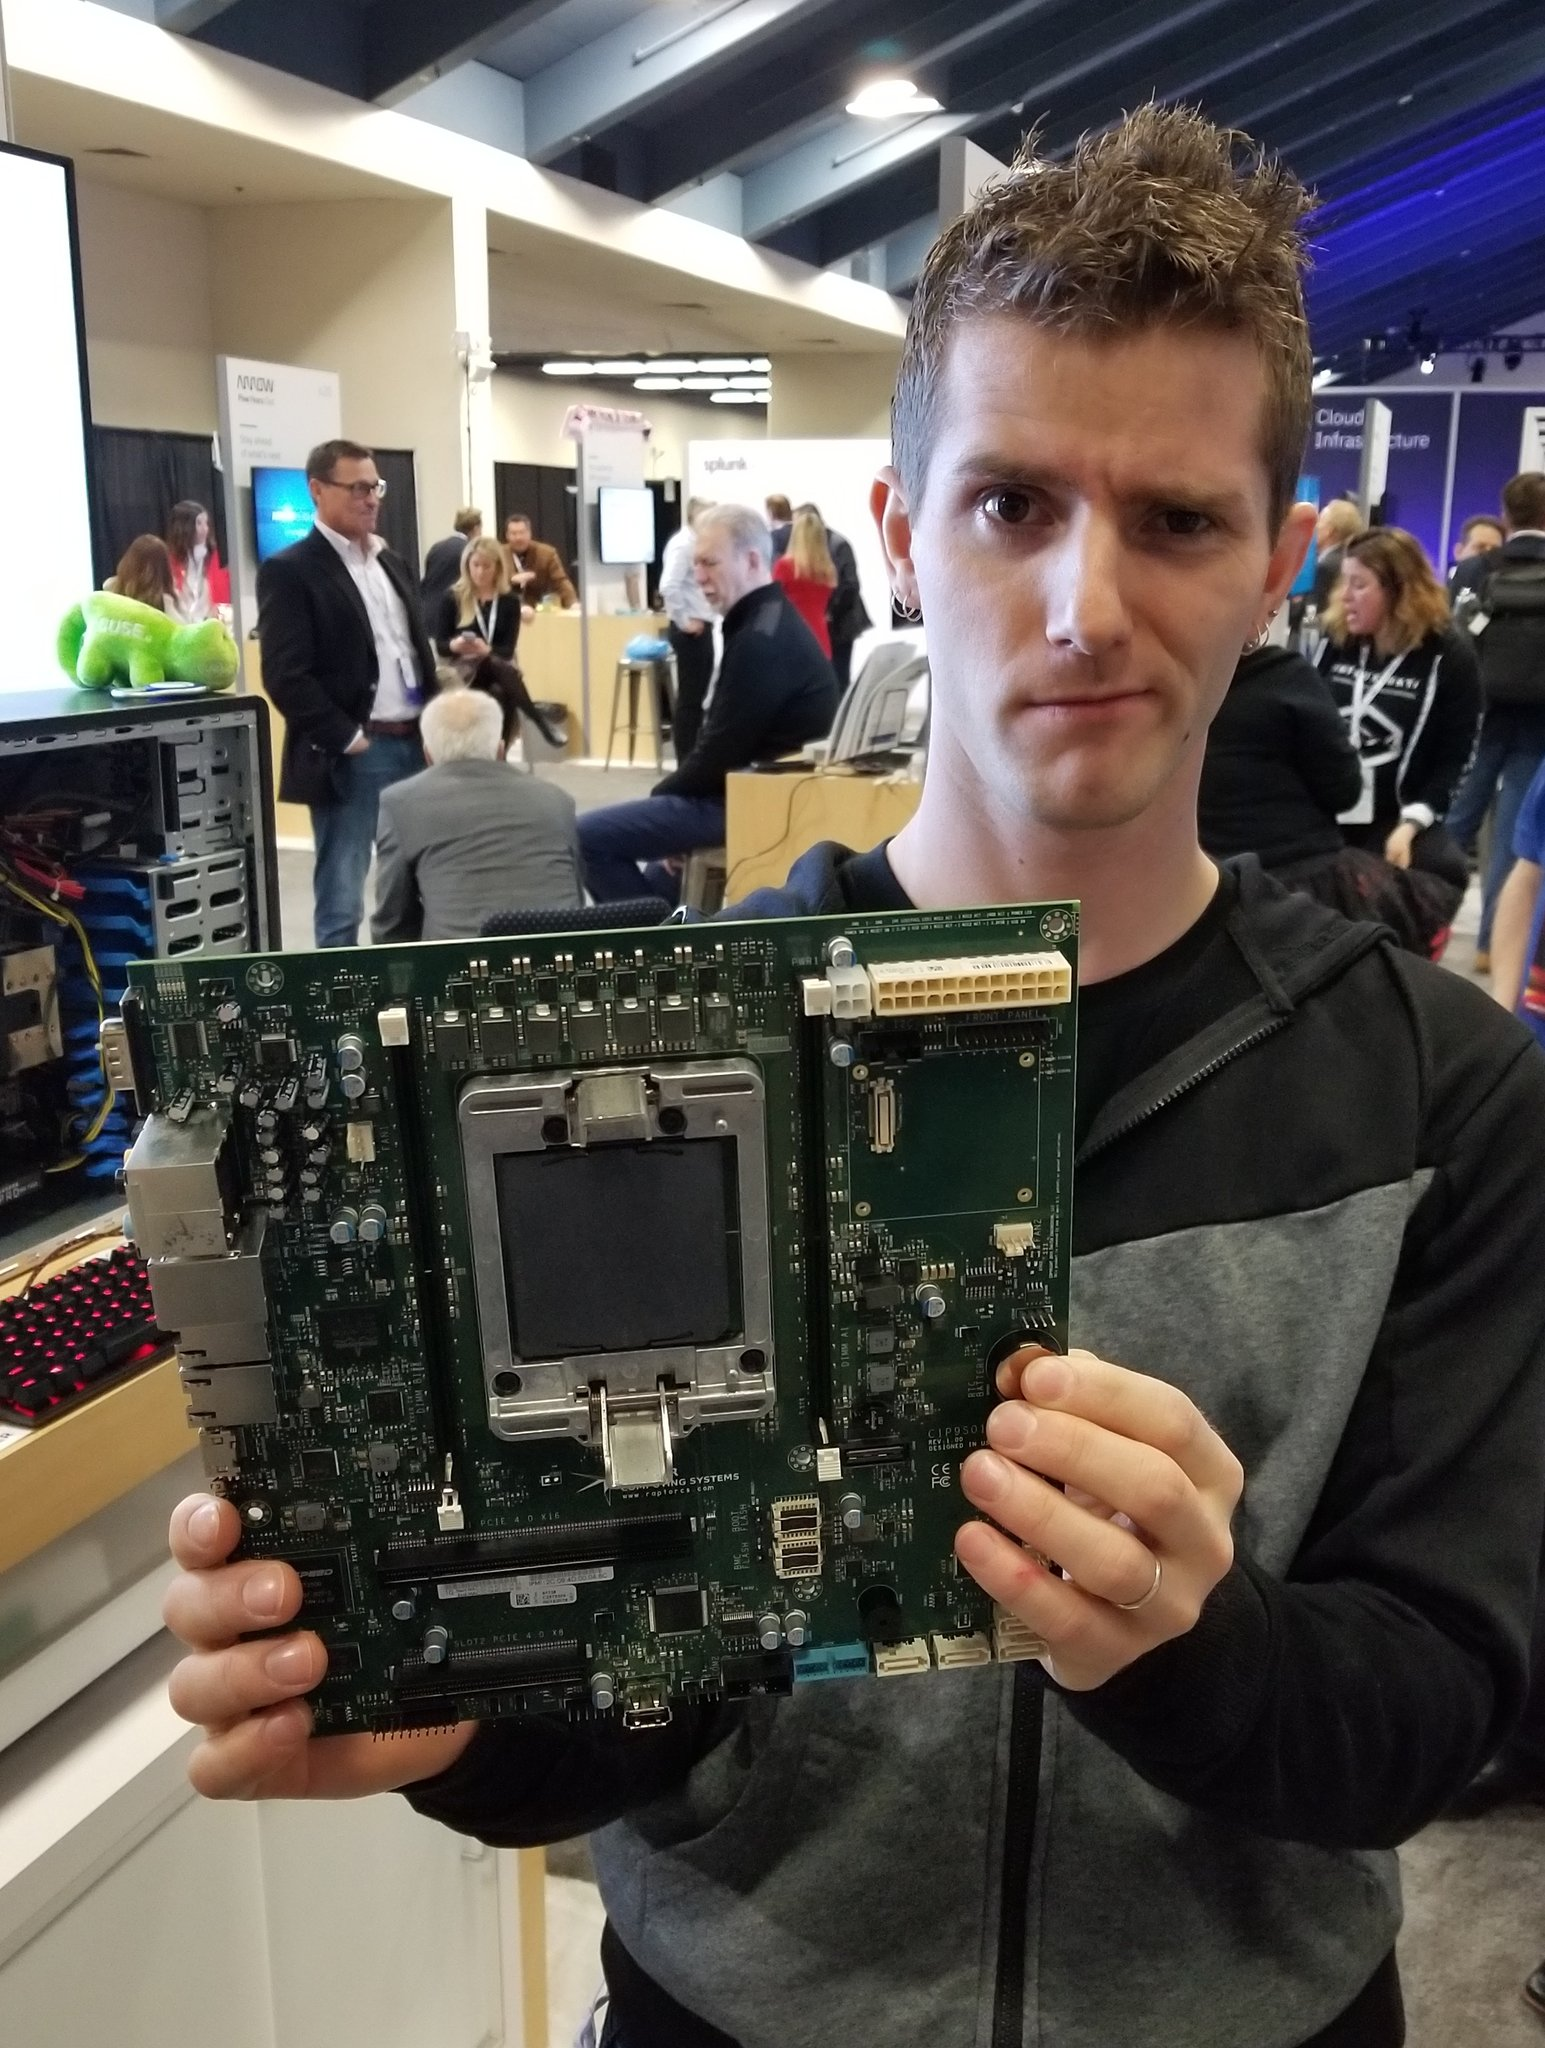 The POWER and PowerPC General Discussion / News Thread - CPU